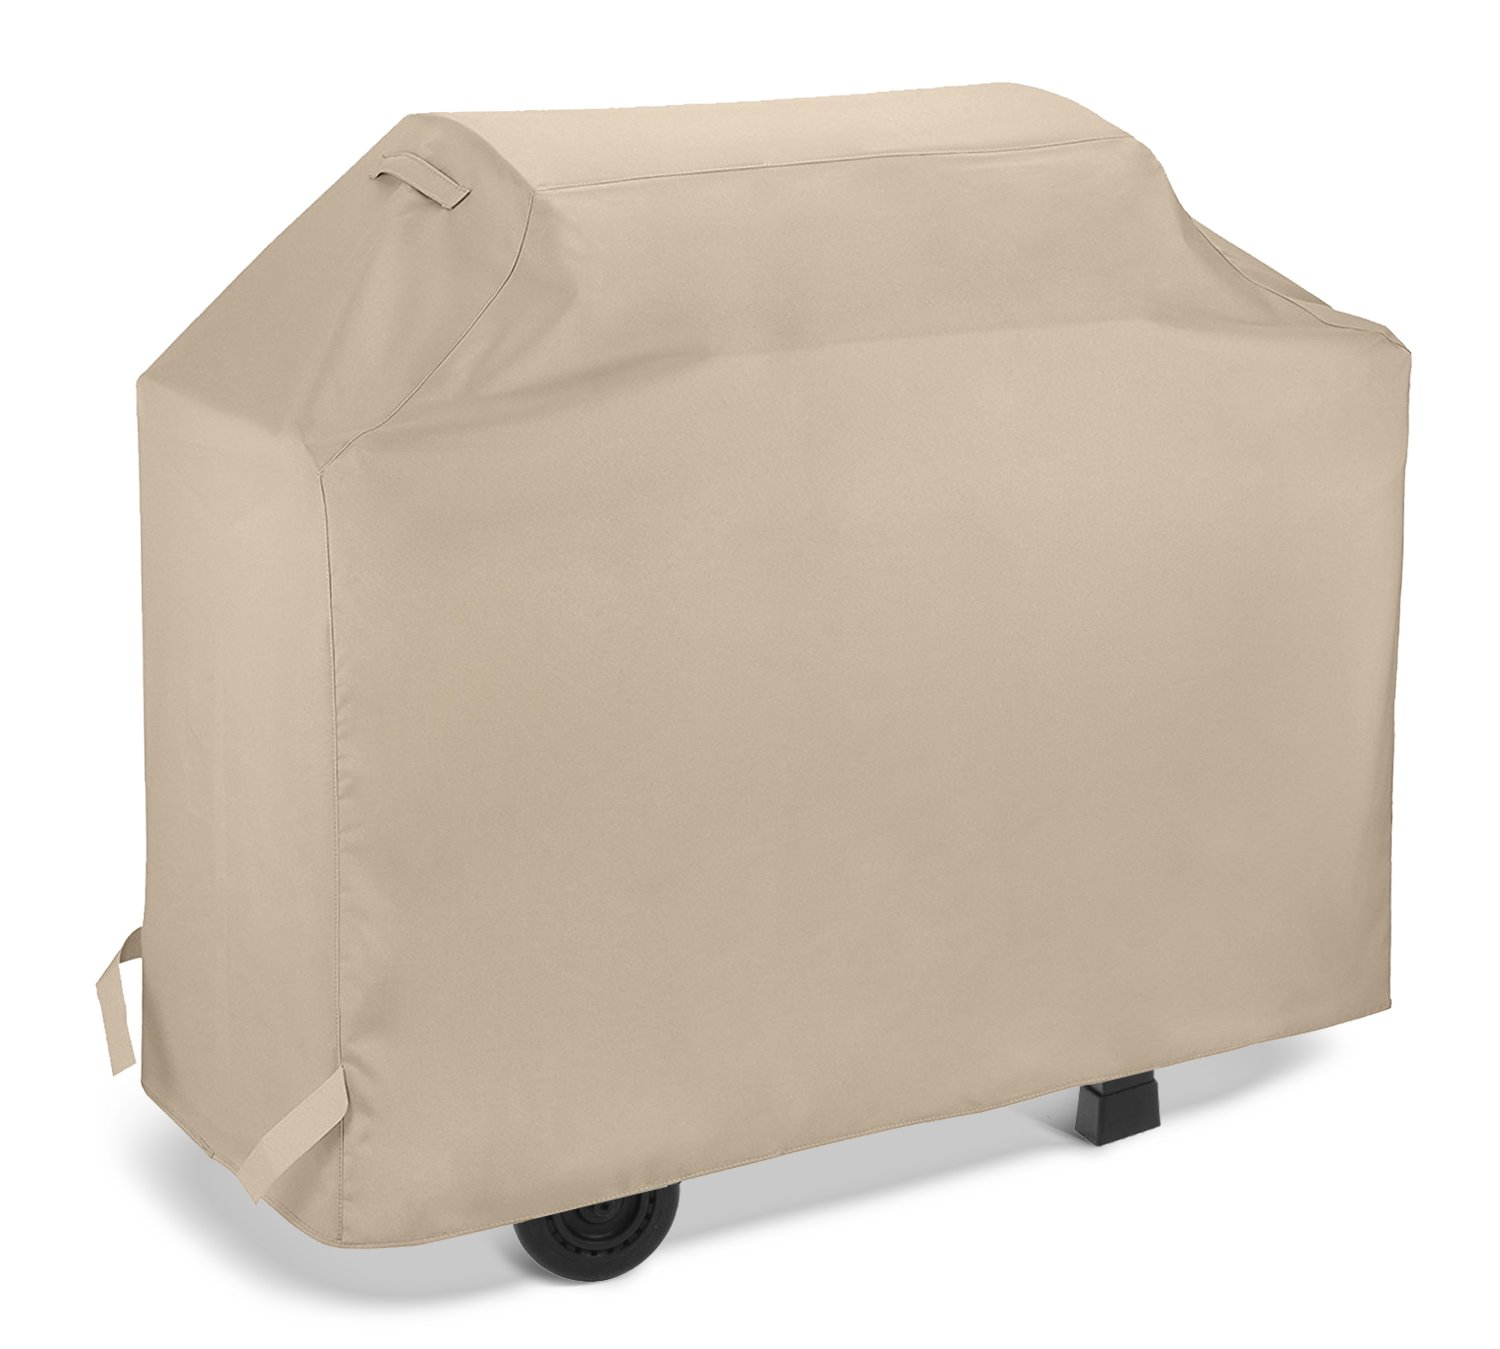 SunPatio Waterproof Grill Cover 70 Inch, Outdoor Heavy Duty Barbecue Cover, All Weather Protection for Weber Char-Broil Nexgrill Grills and More, Beige by SunPatio